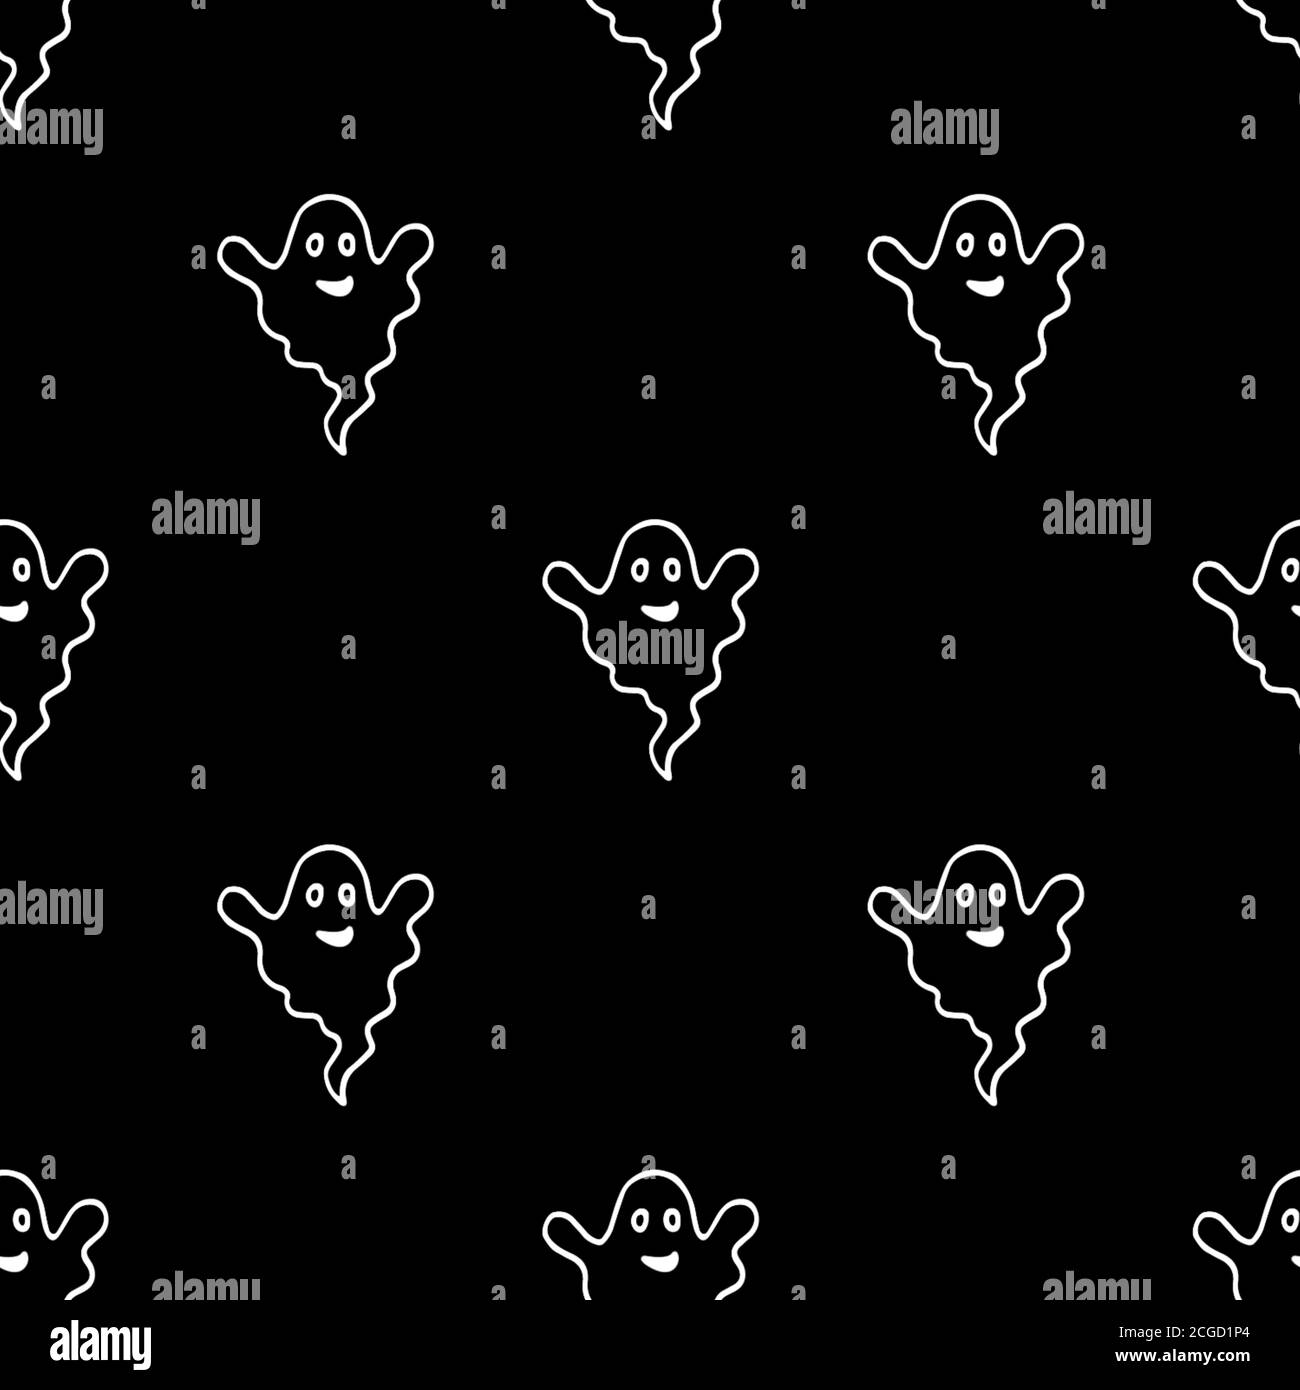 Autumn Seamless Pattern With Ghosts Endless Texture For Wallpaper Background Wrapping Halloween And Thanksgiving Ornament White And Black Colors Stock Photo Alamy